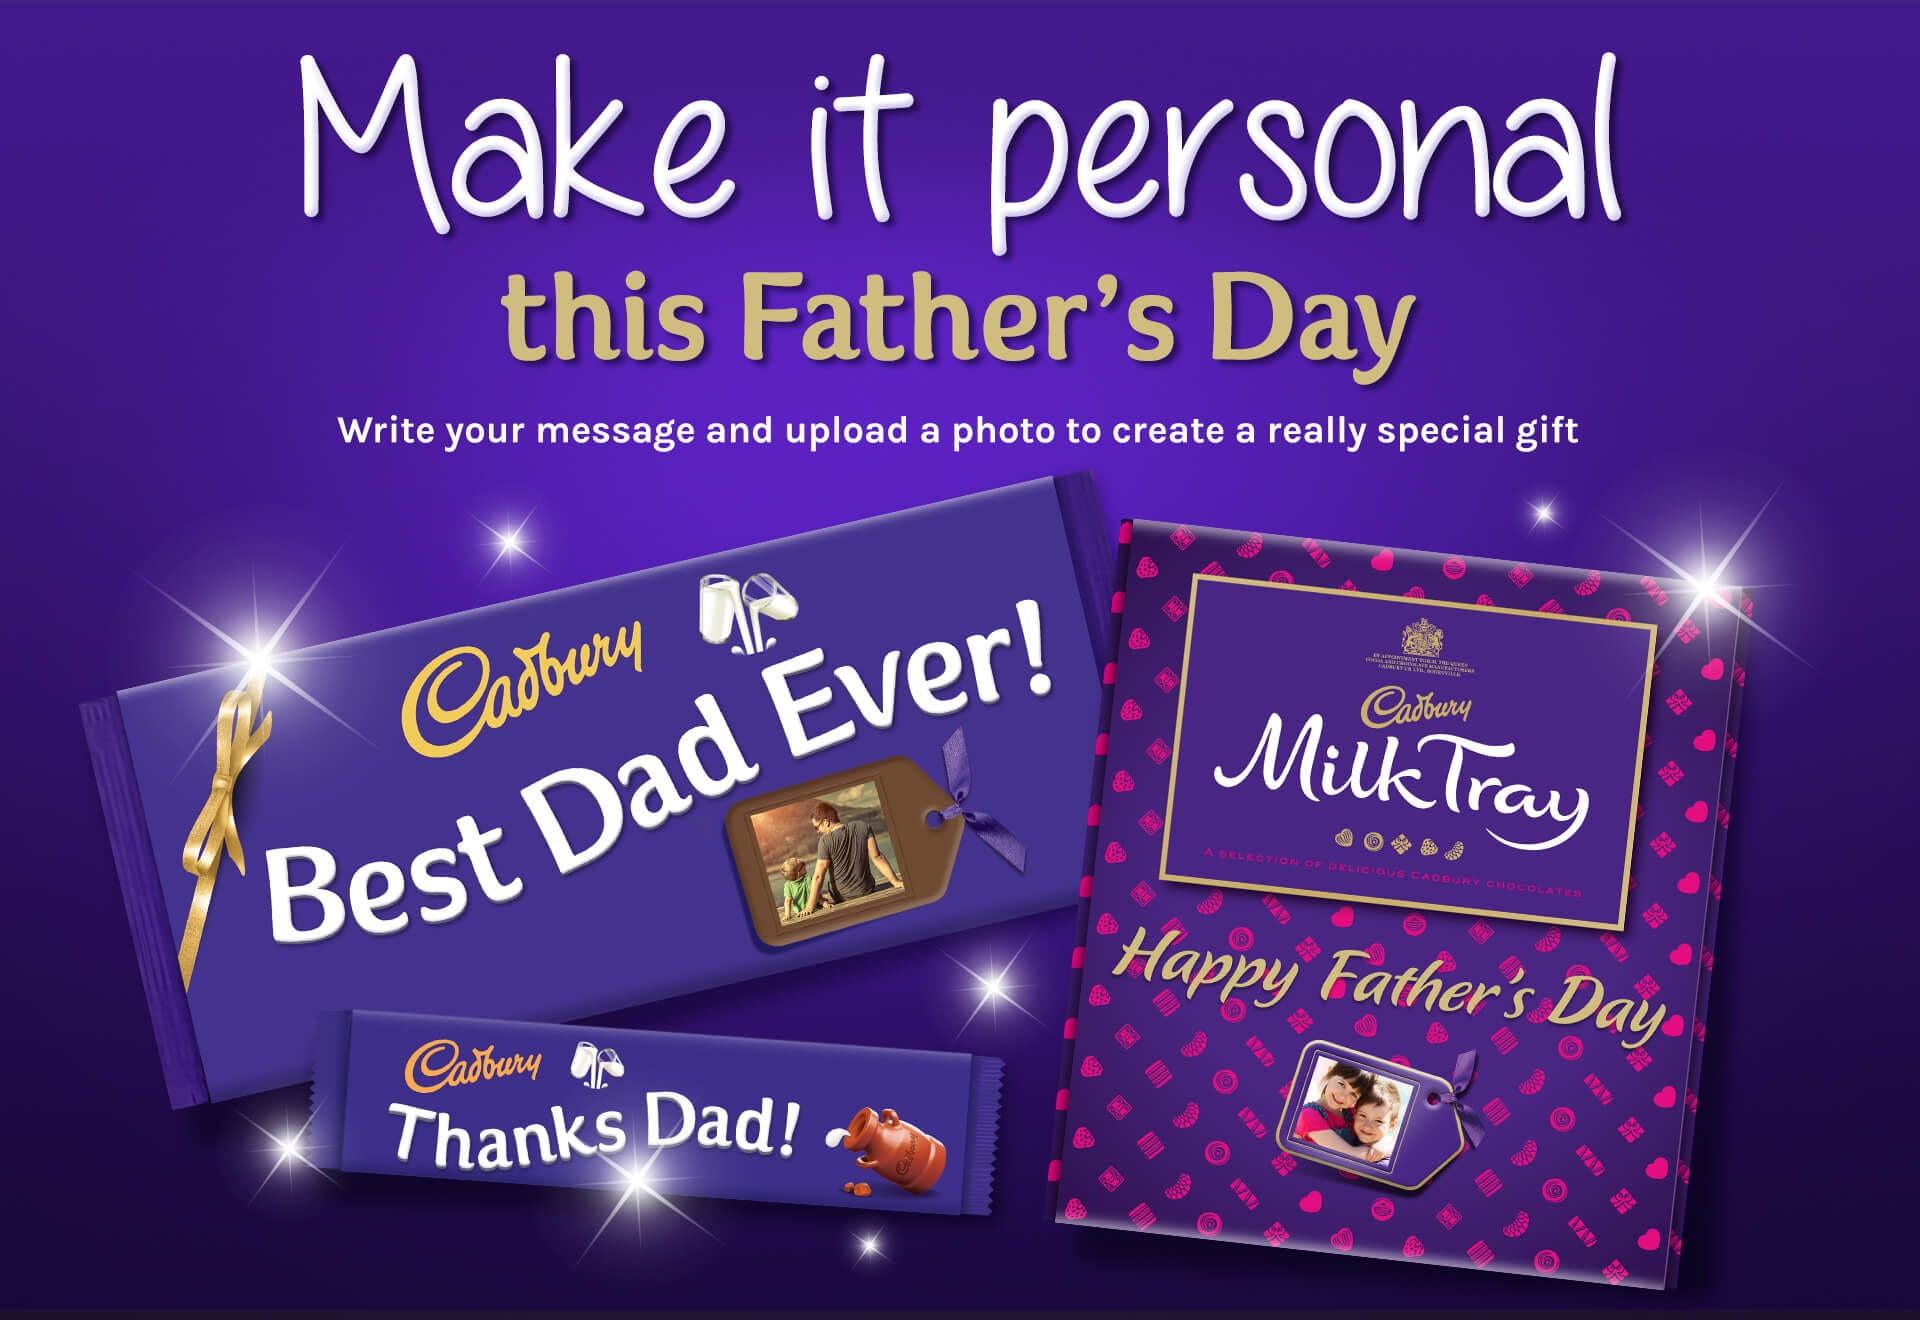 Make it personal with Cadbury Personalised Chocolates this Father's Day